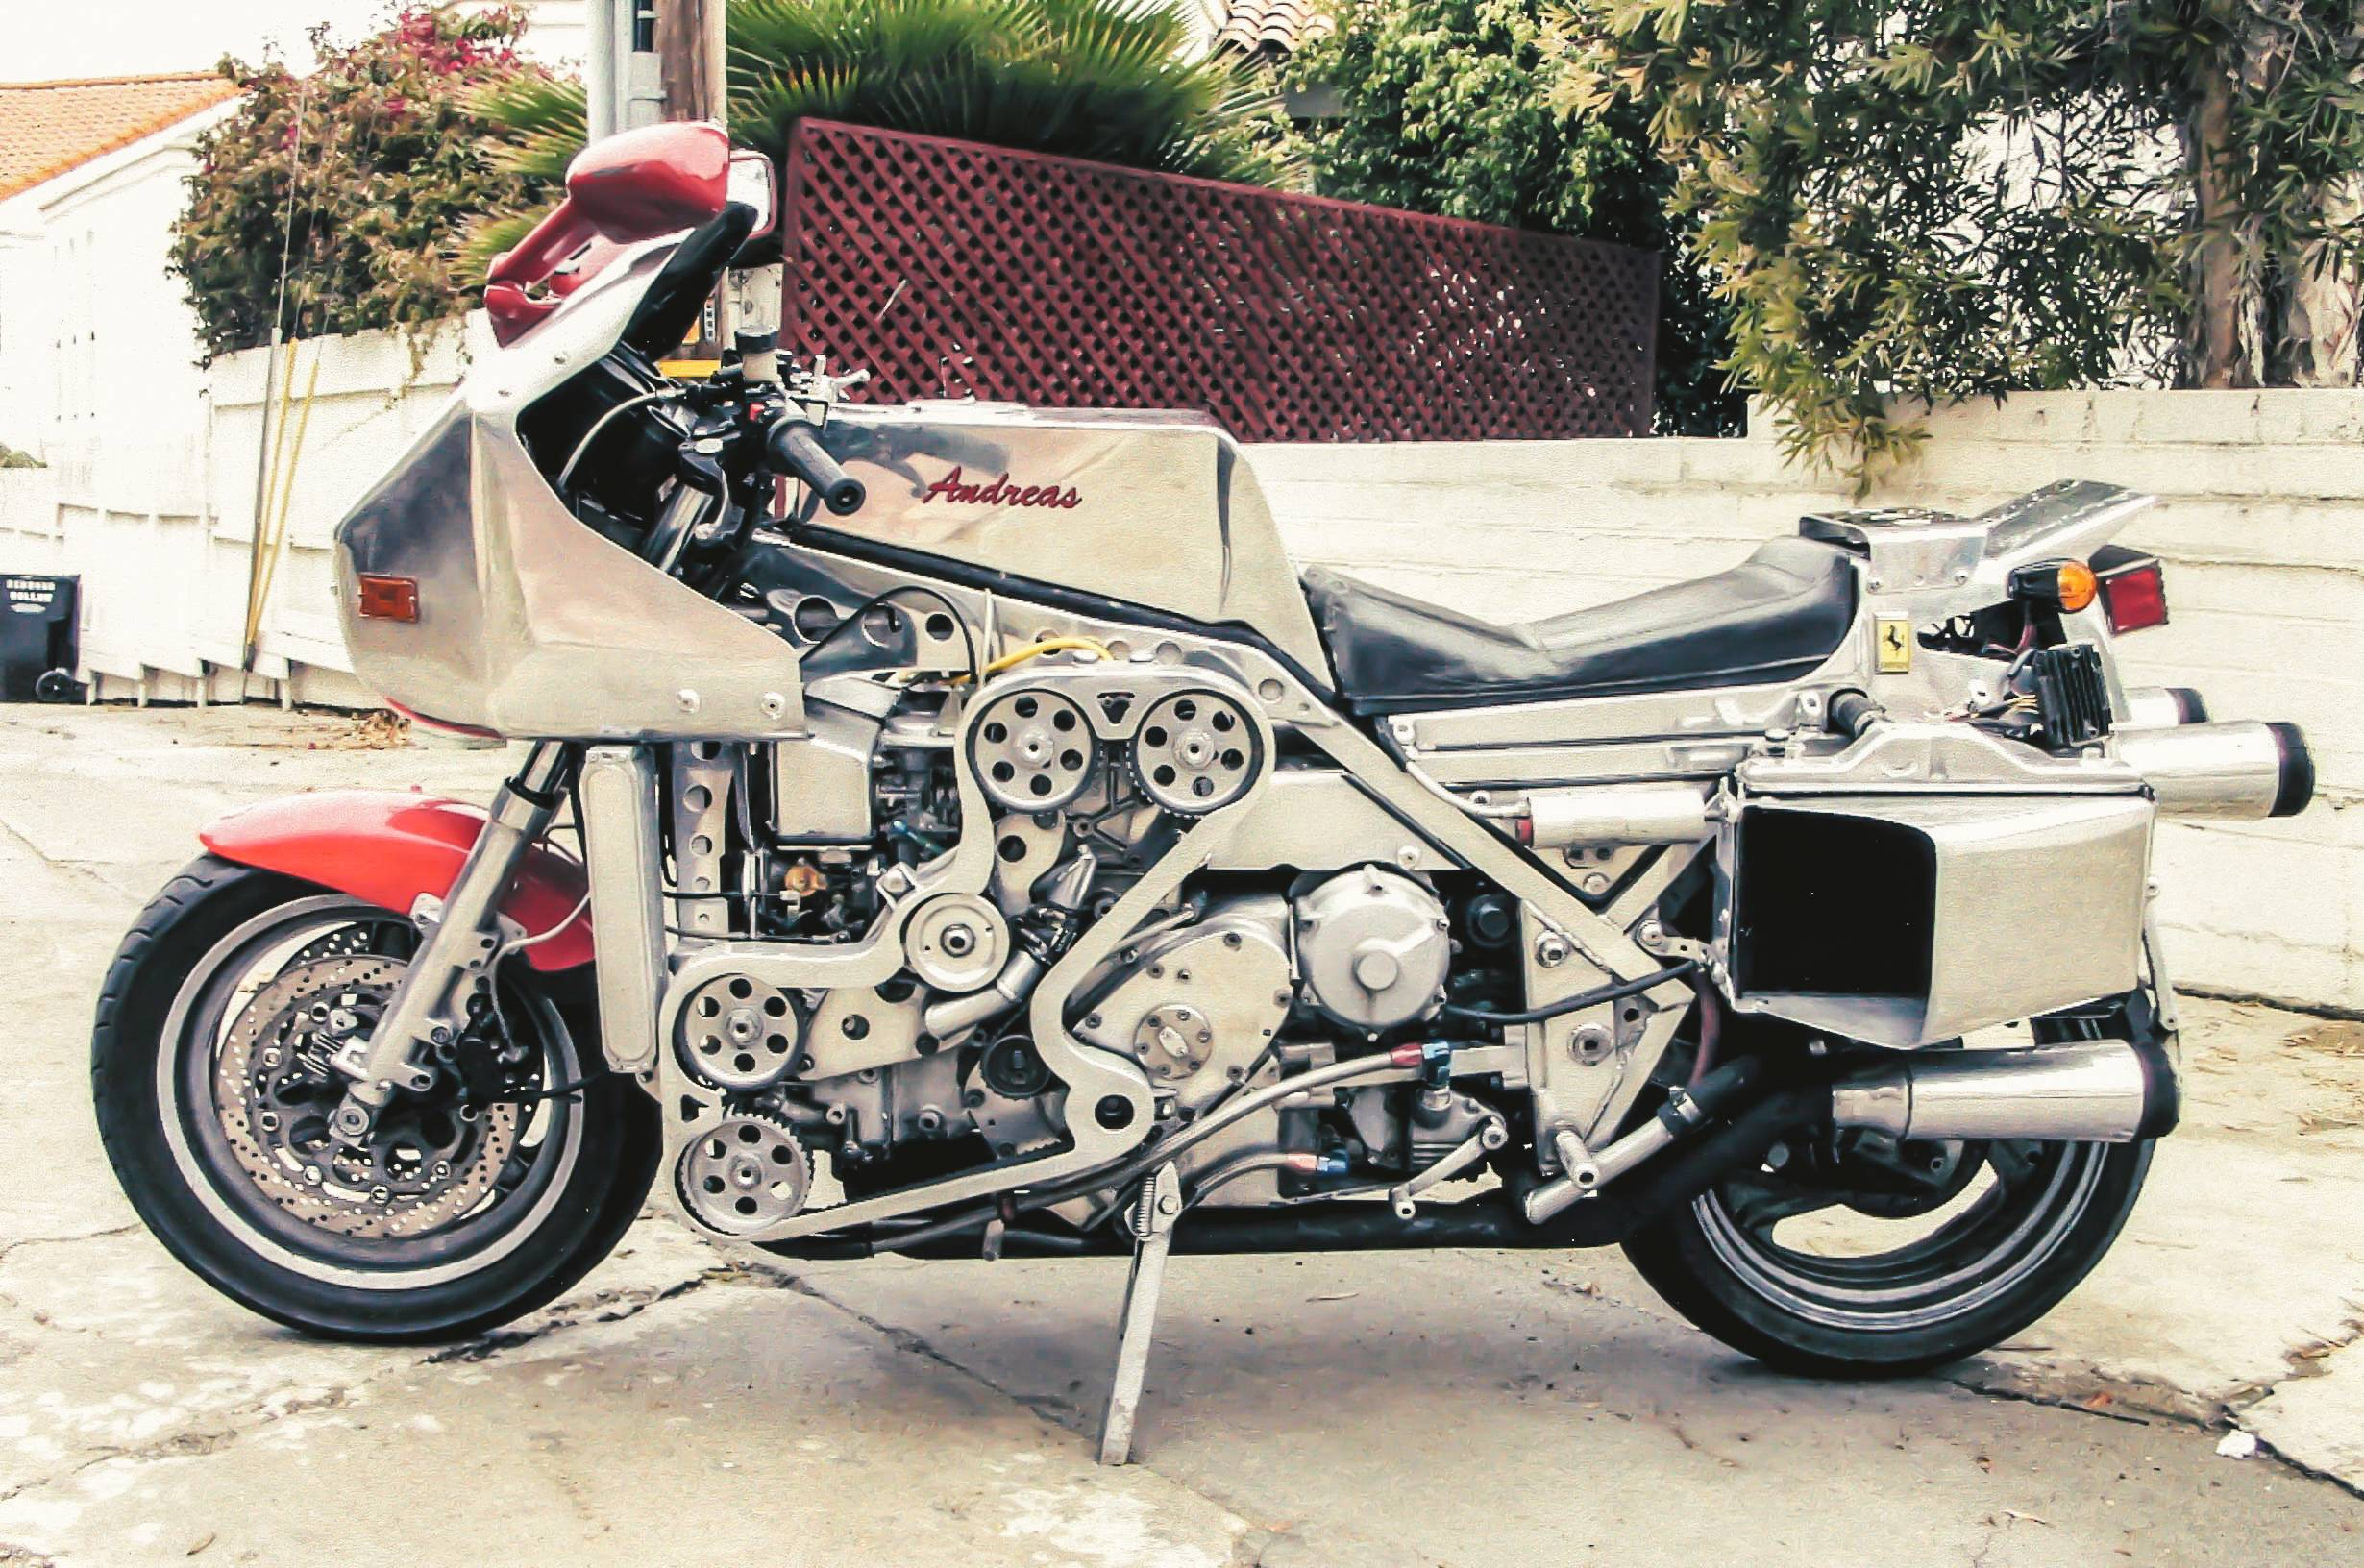 Modified custom motorcycle with a Ferrari F136